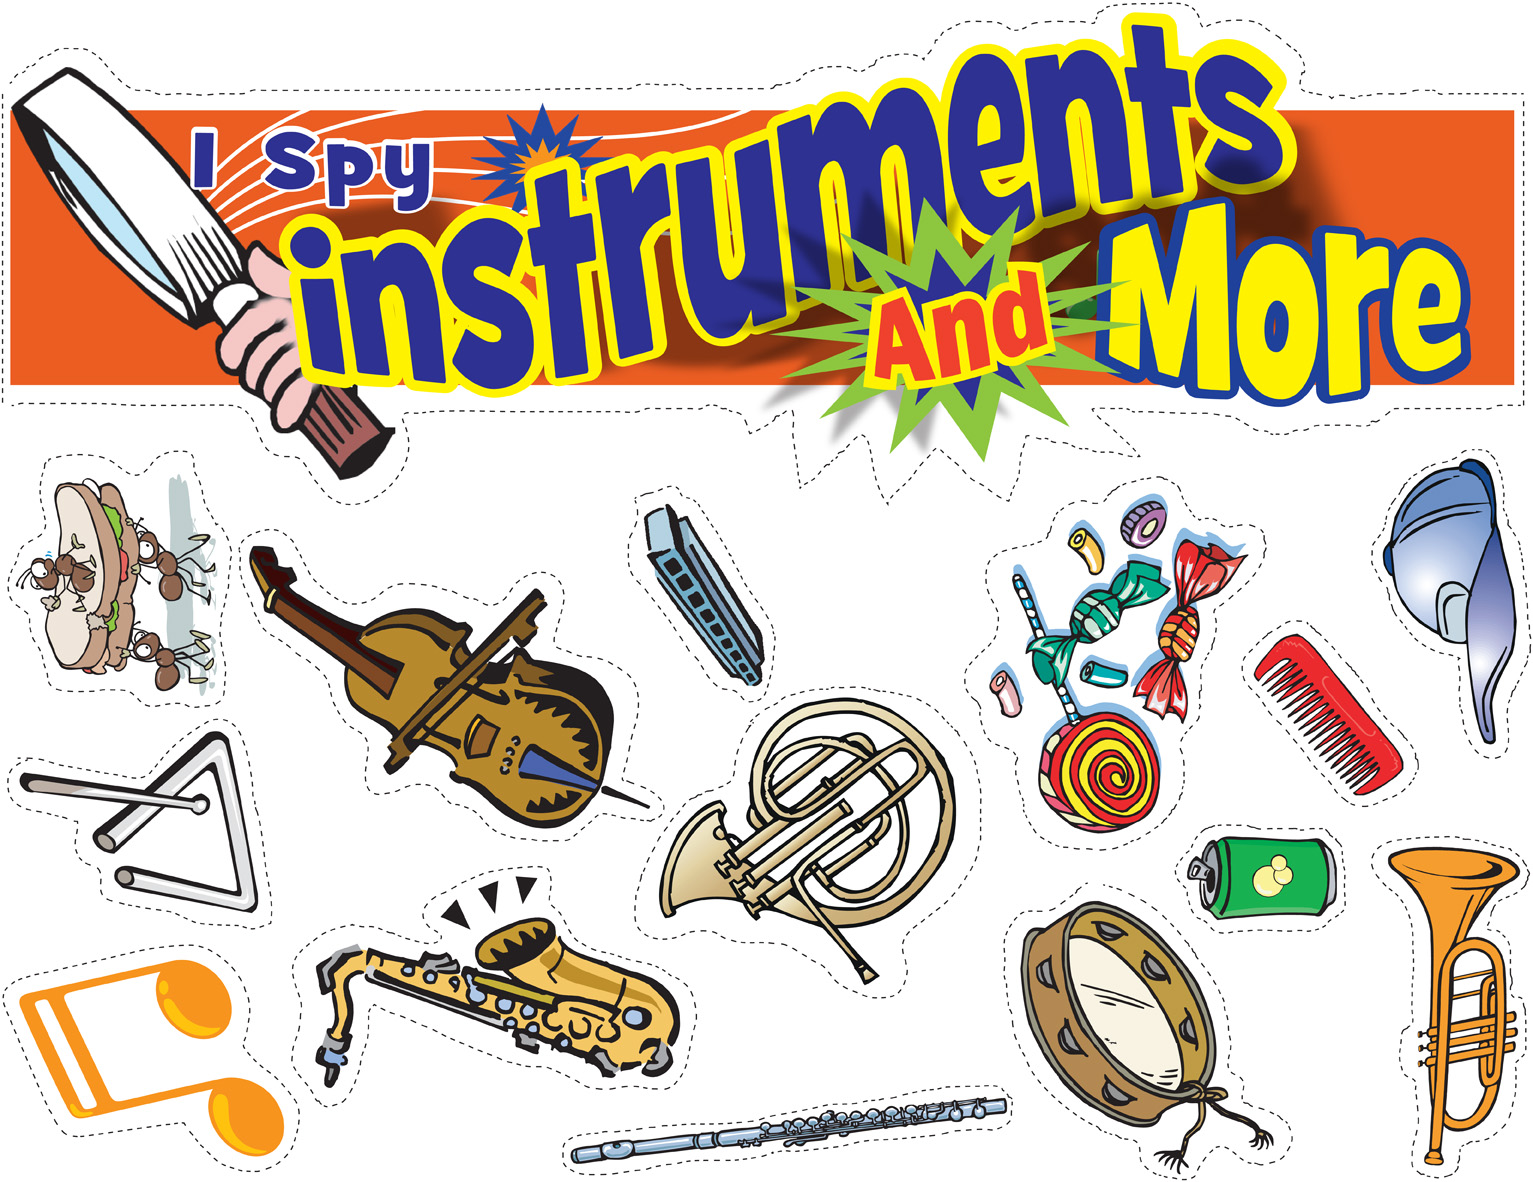 Cut 'n' Go Bulletin Board - I Spy Instruments and More